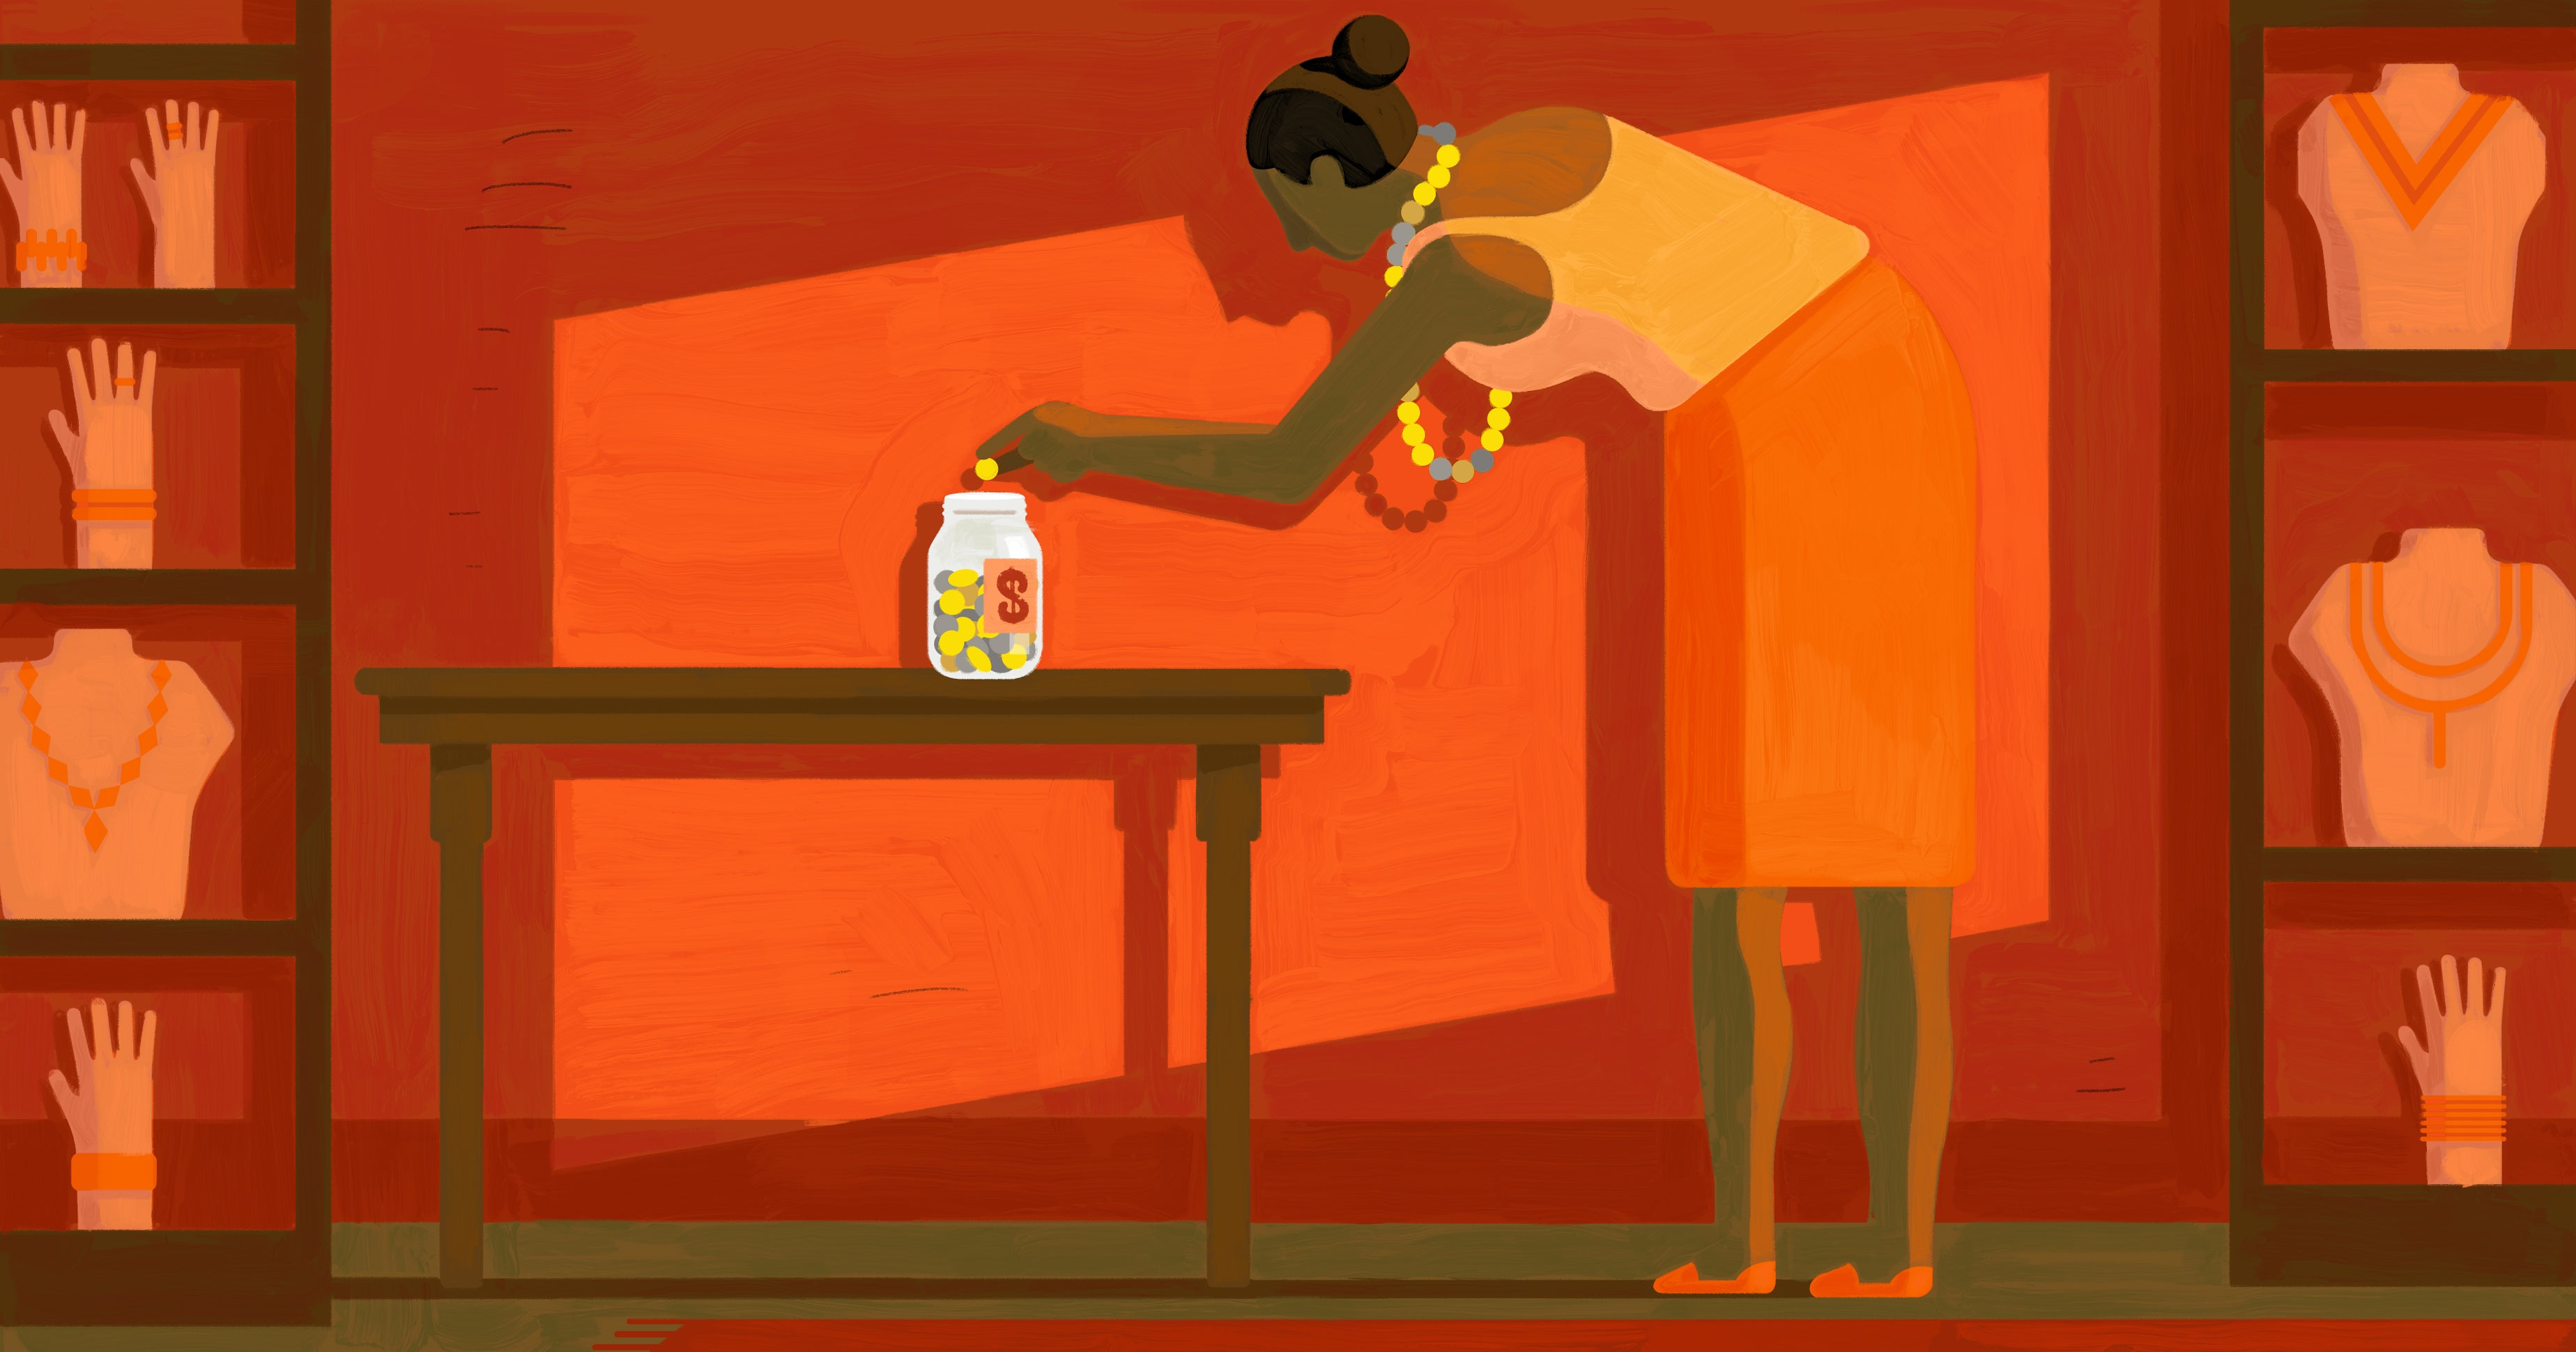 Illustration of a woman counting coins into a jar. The coin shapes are echoed in the beads in her necklace